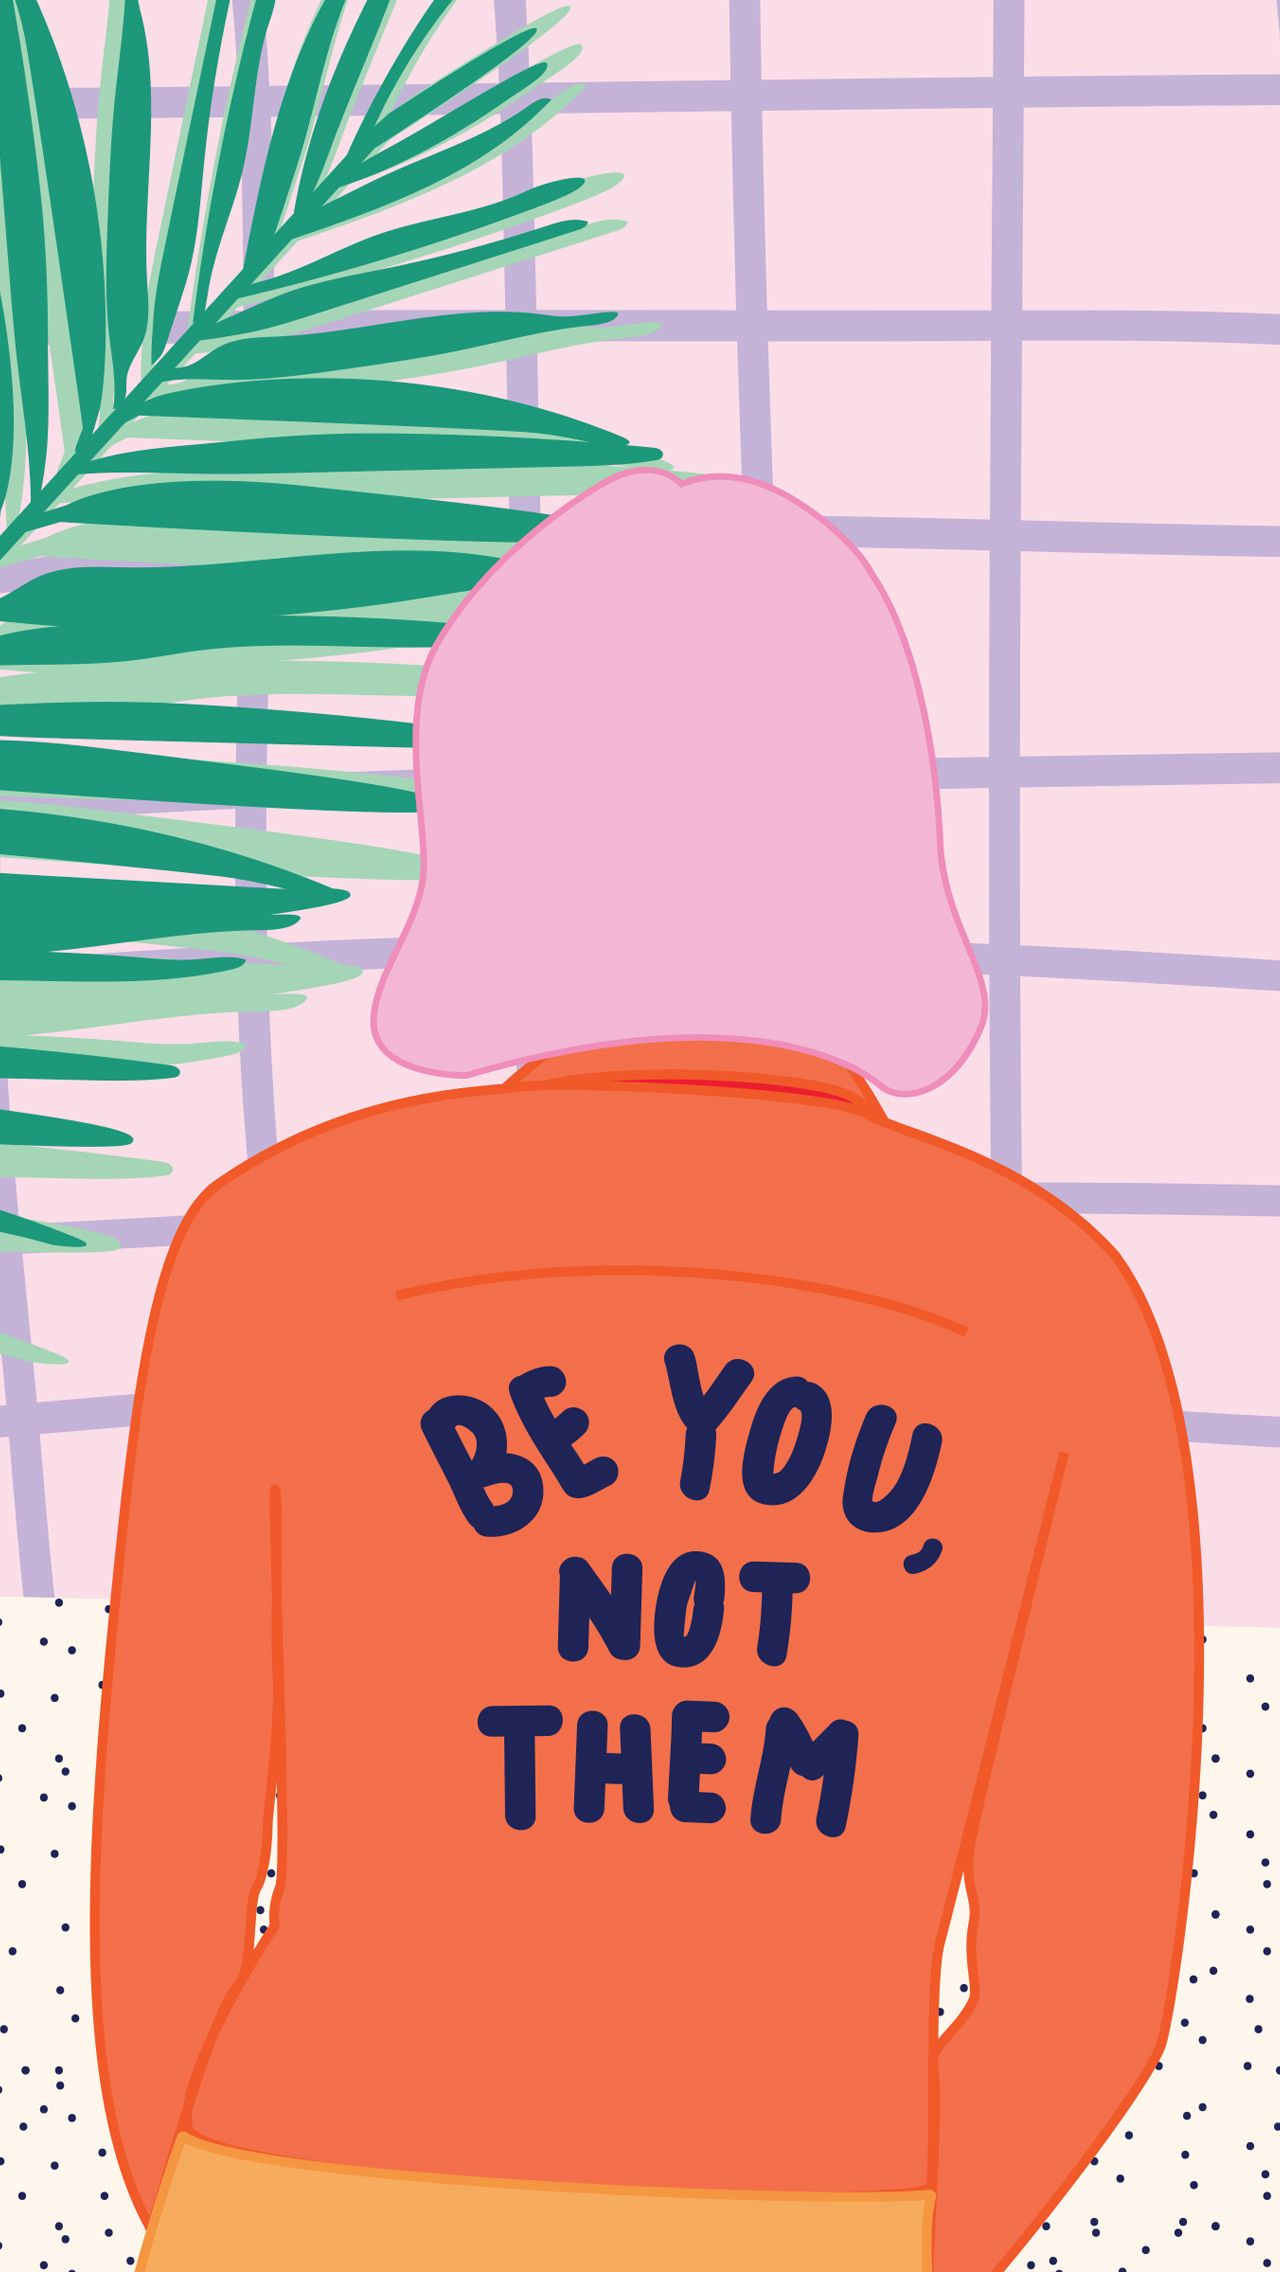 illustration | be you not them - via ban.do